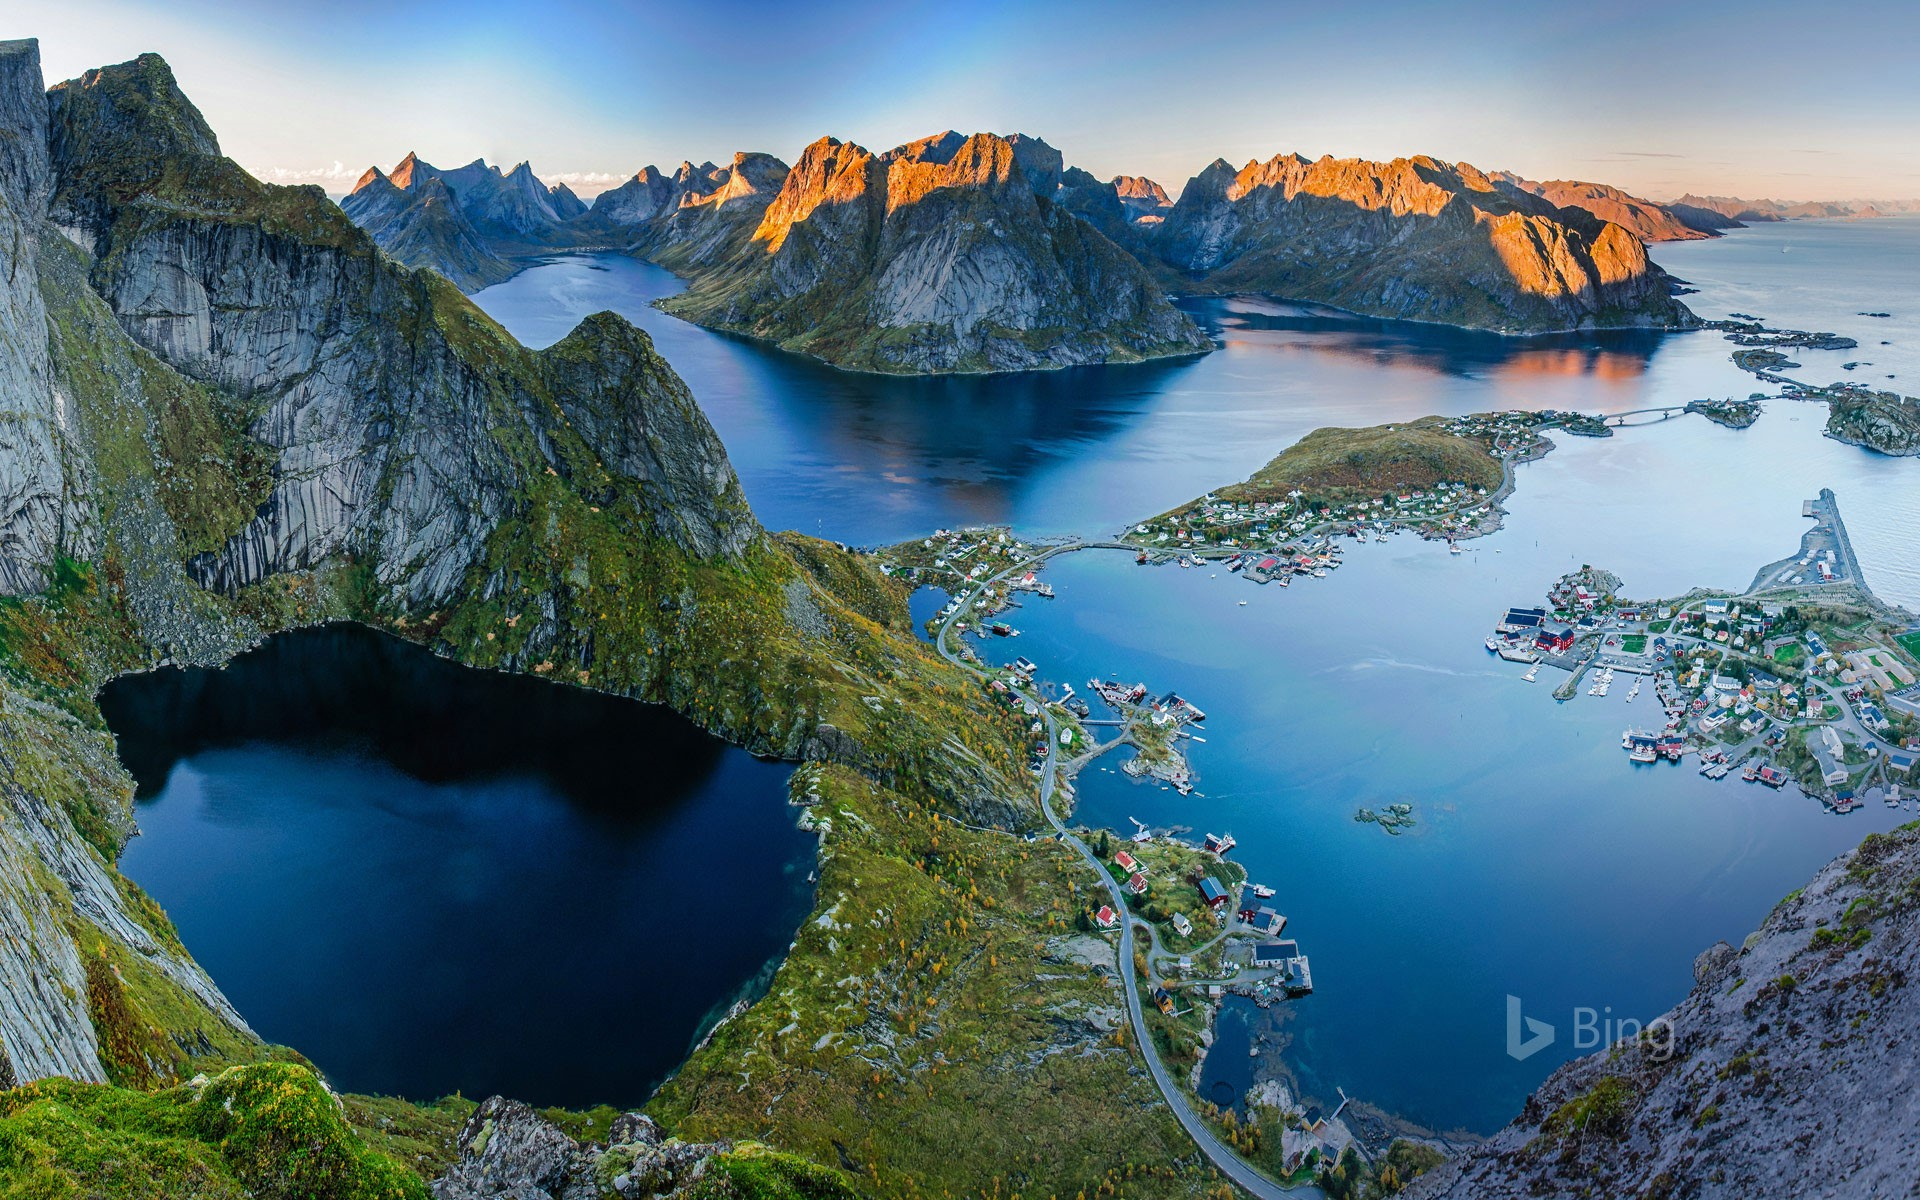 The view from Reinebringen ridge at the village of Reine on Moskenesøya, Norway